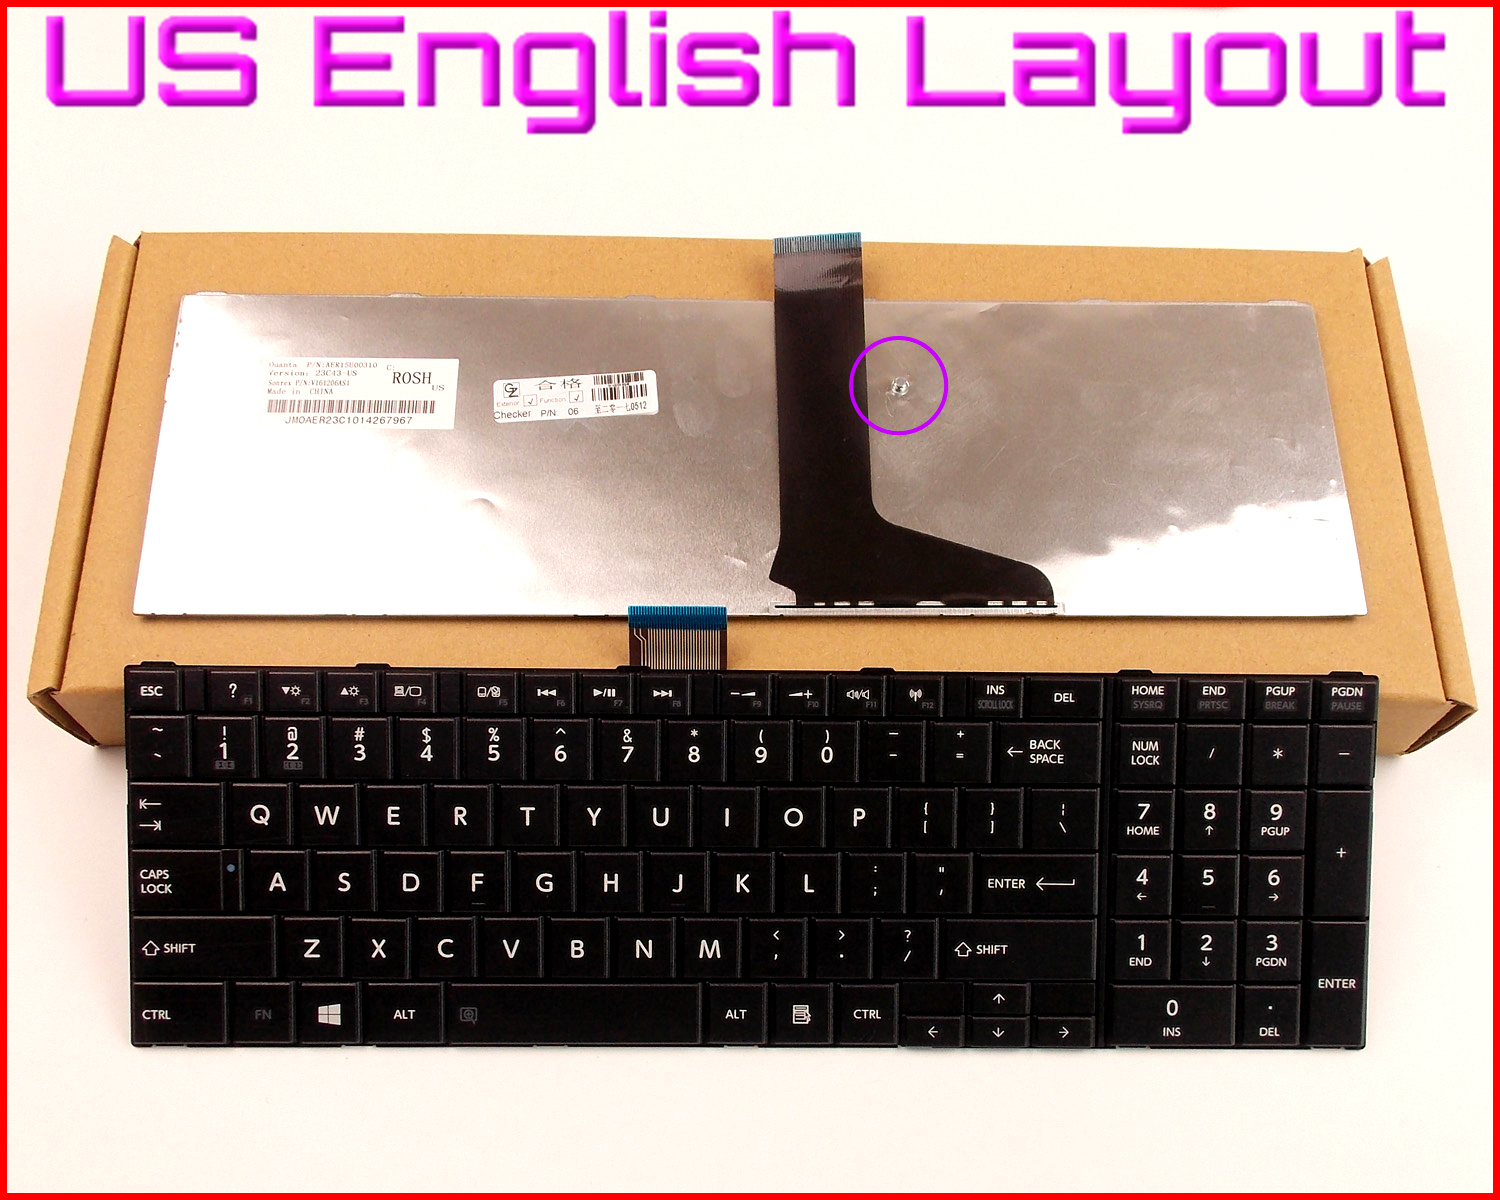 New Keyboard US English Version for Toshiba Satellite C855 C855D S850 S855 S870 S850D S855D S870D S875D L850 C850 L875D Laptop image